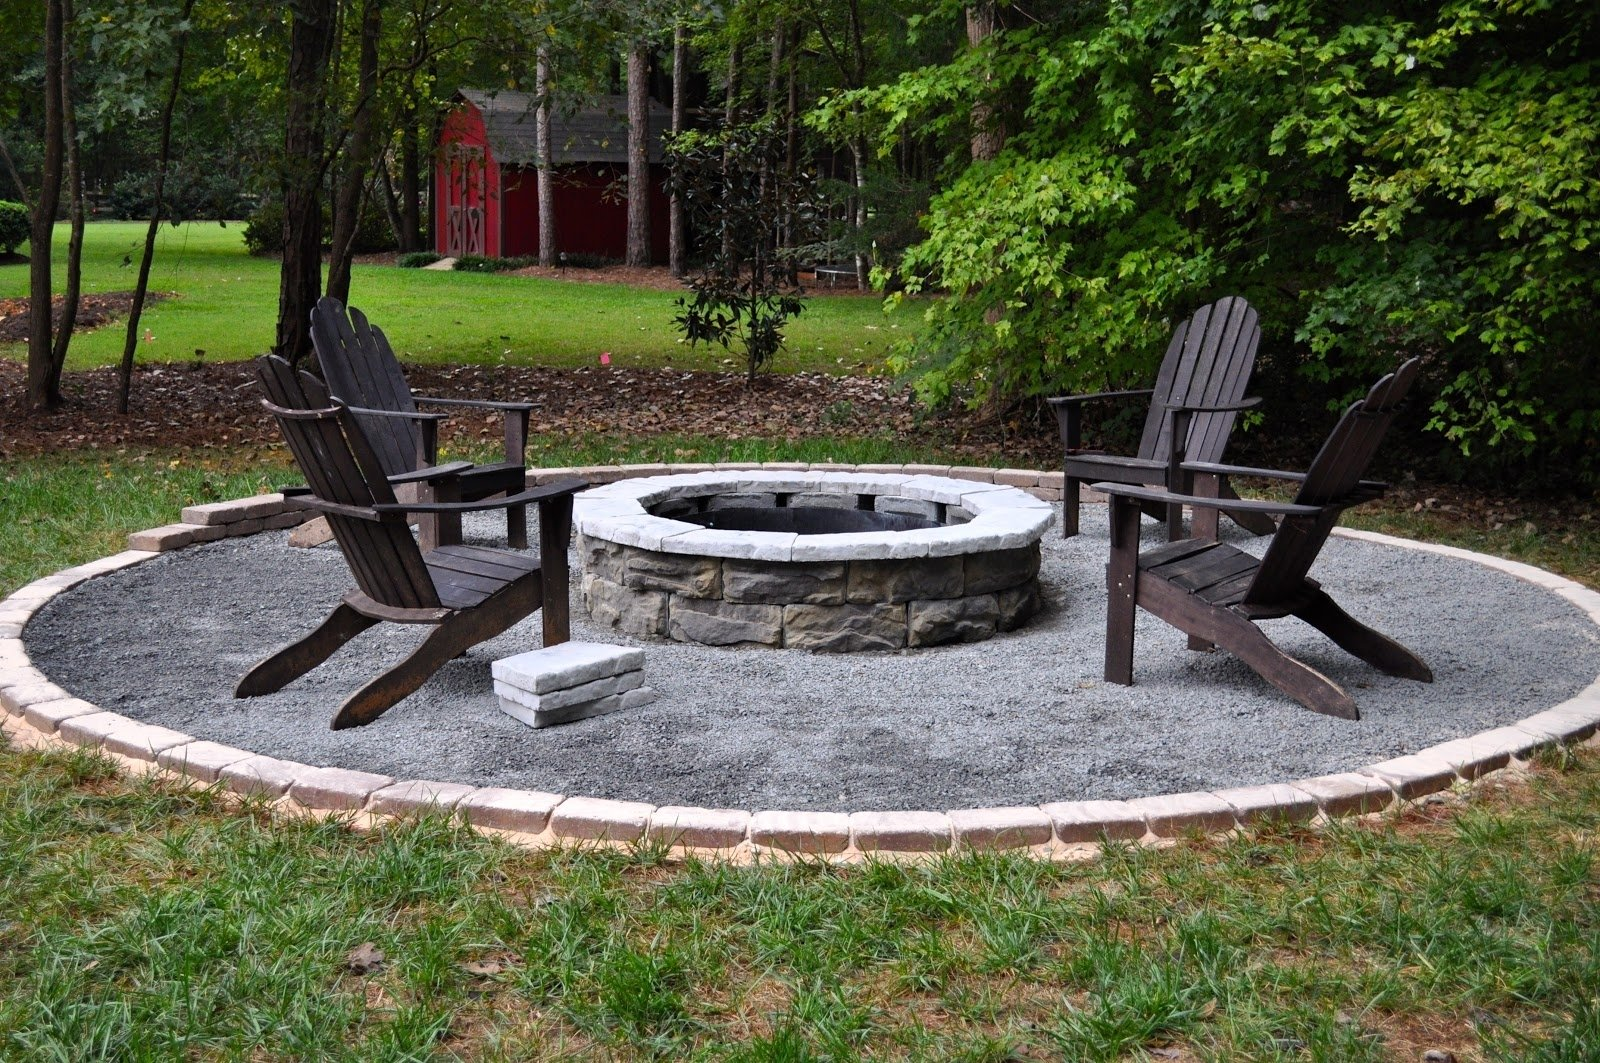 10 Fashionable Homemade Outdoor Fire Pit Ideas backyard homemade fire pit outdoor waco how to make homemade 2021